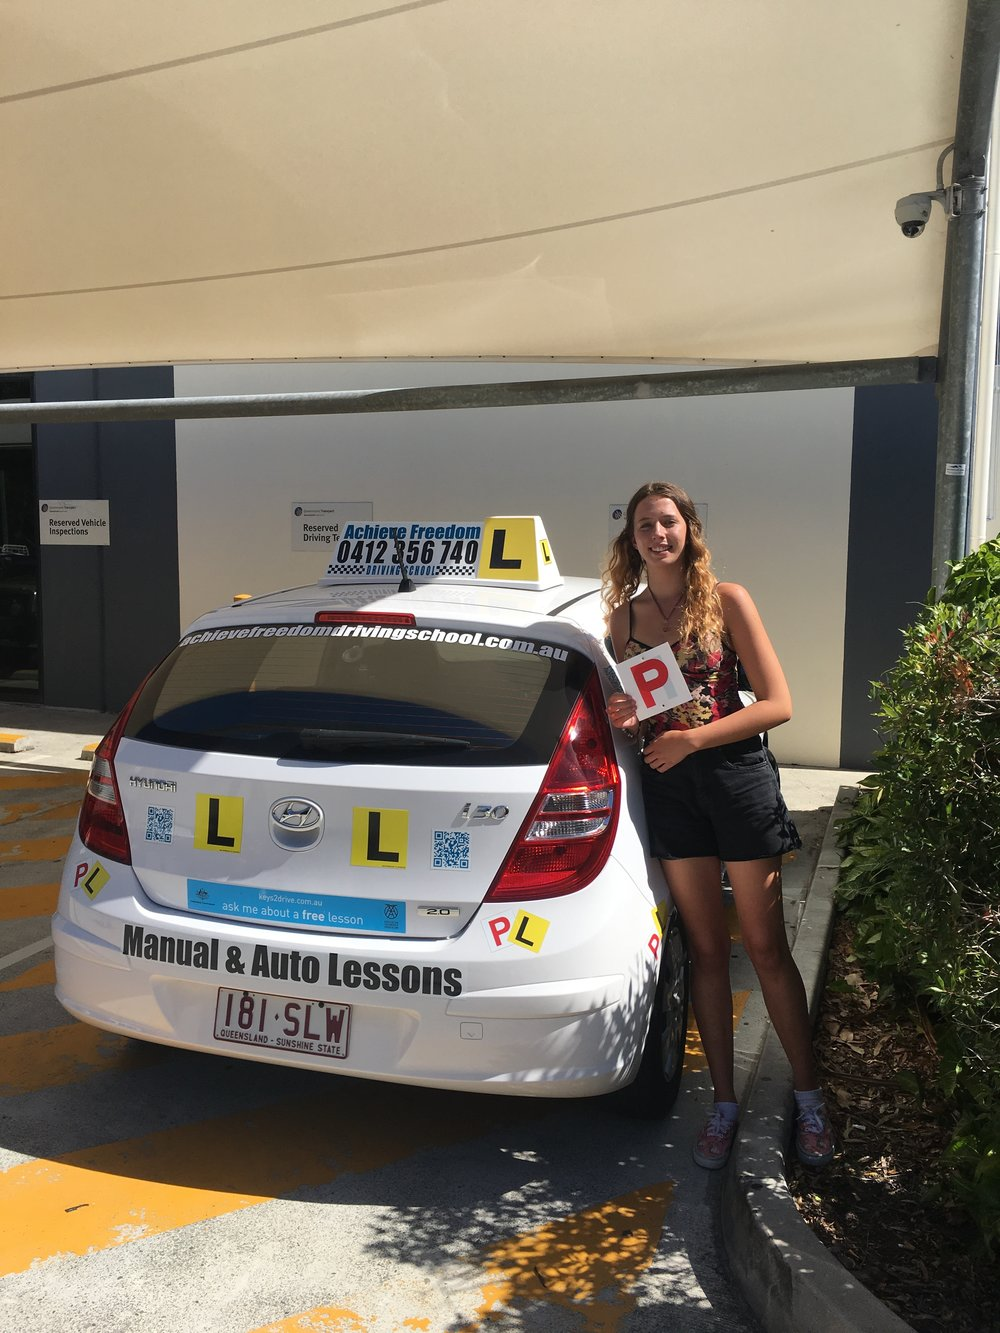 Shania Passed her driving test with Achieve Freedom Driving school at the Currumbin driving test center.